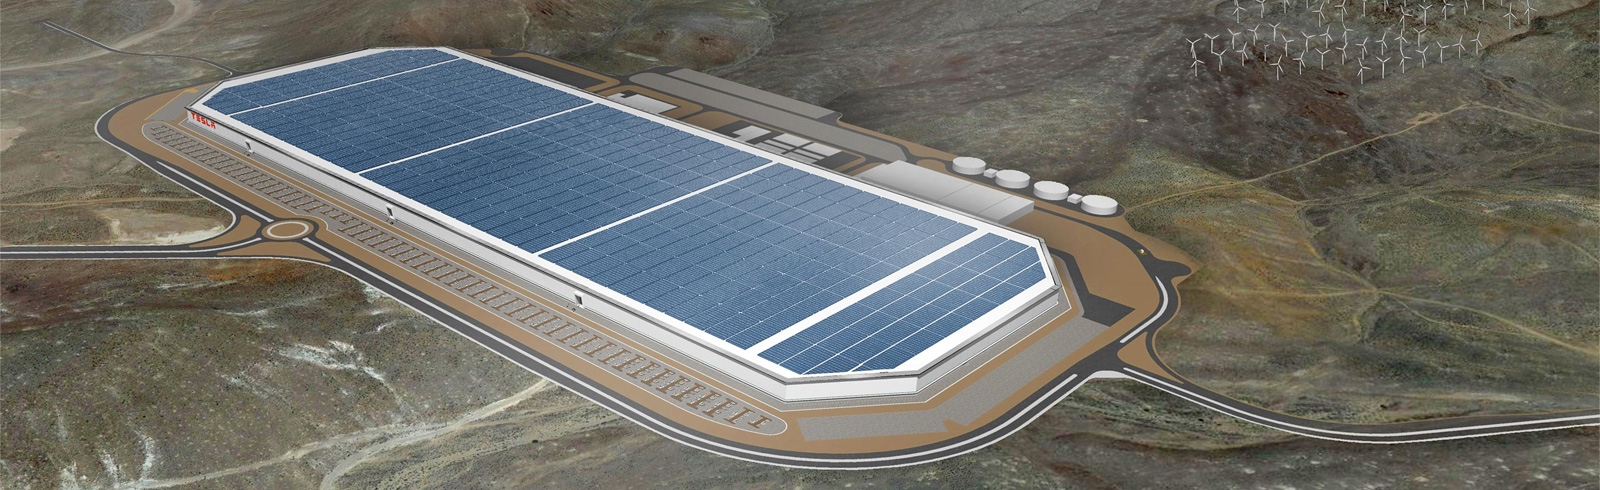 Tesla is looking for a location in Europe for a new Gigafactory